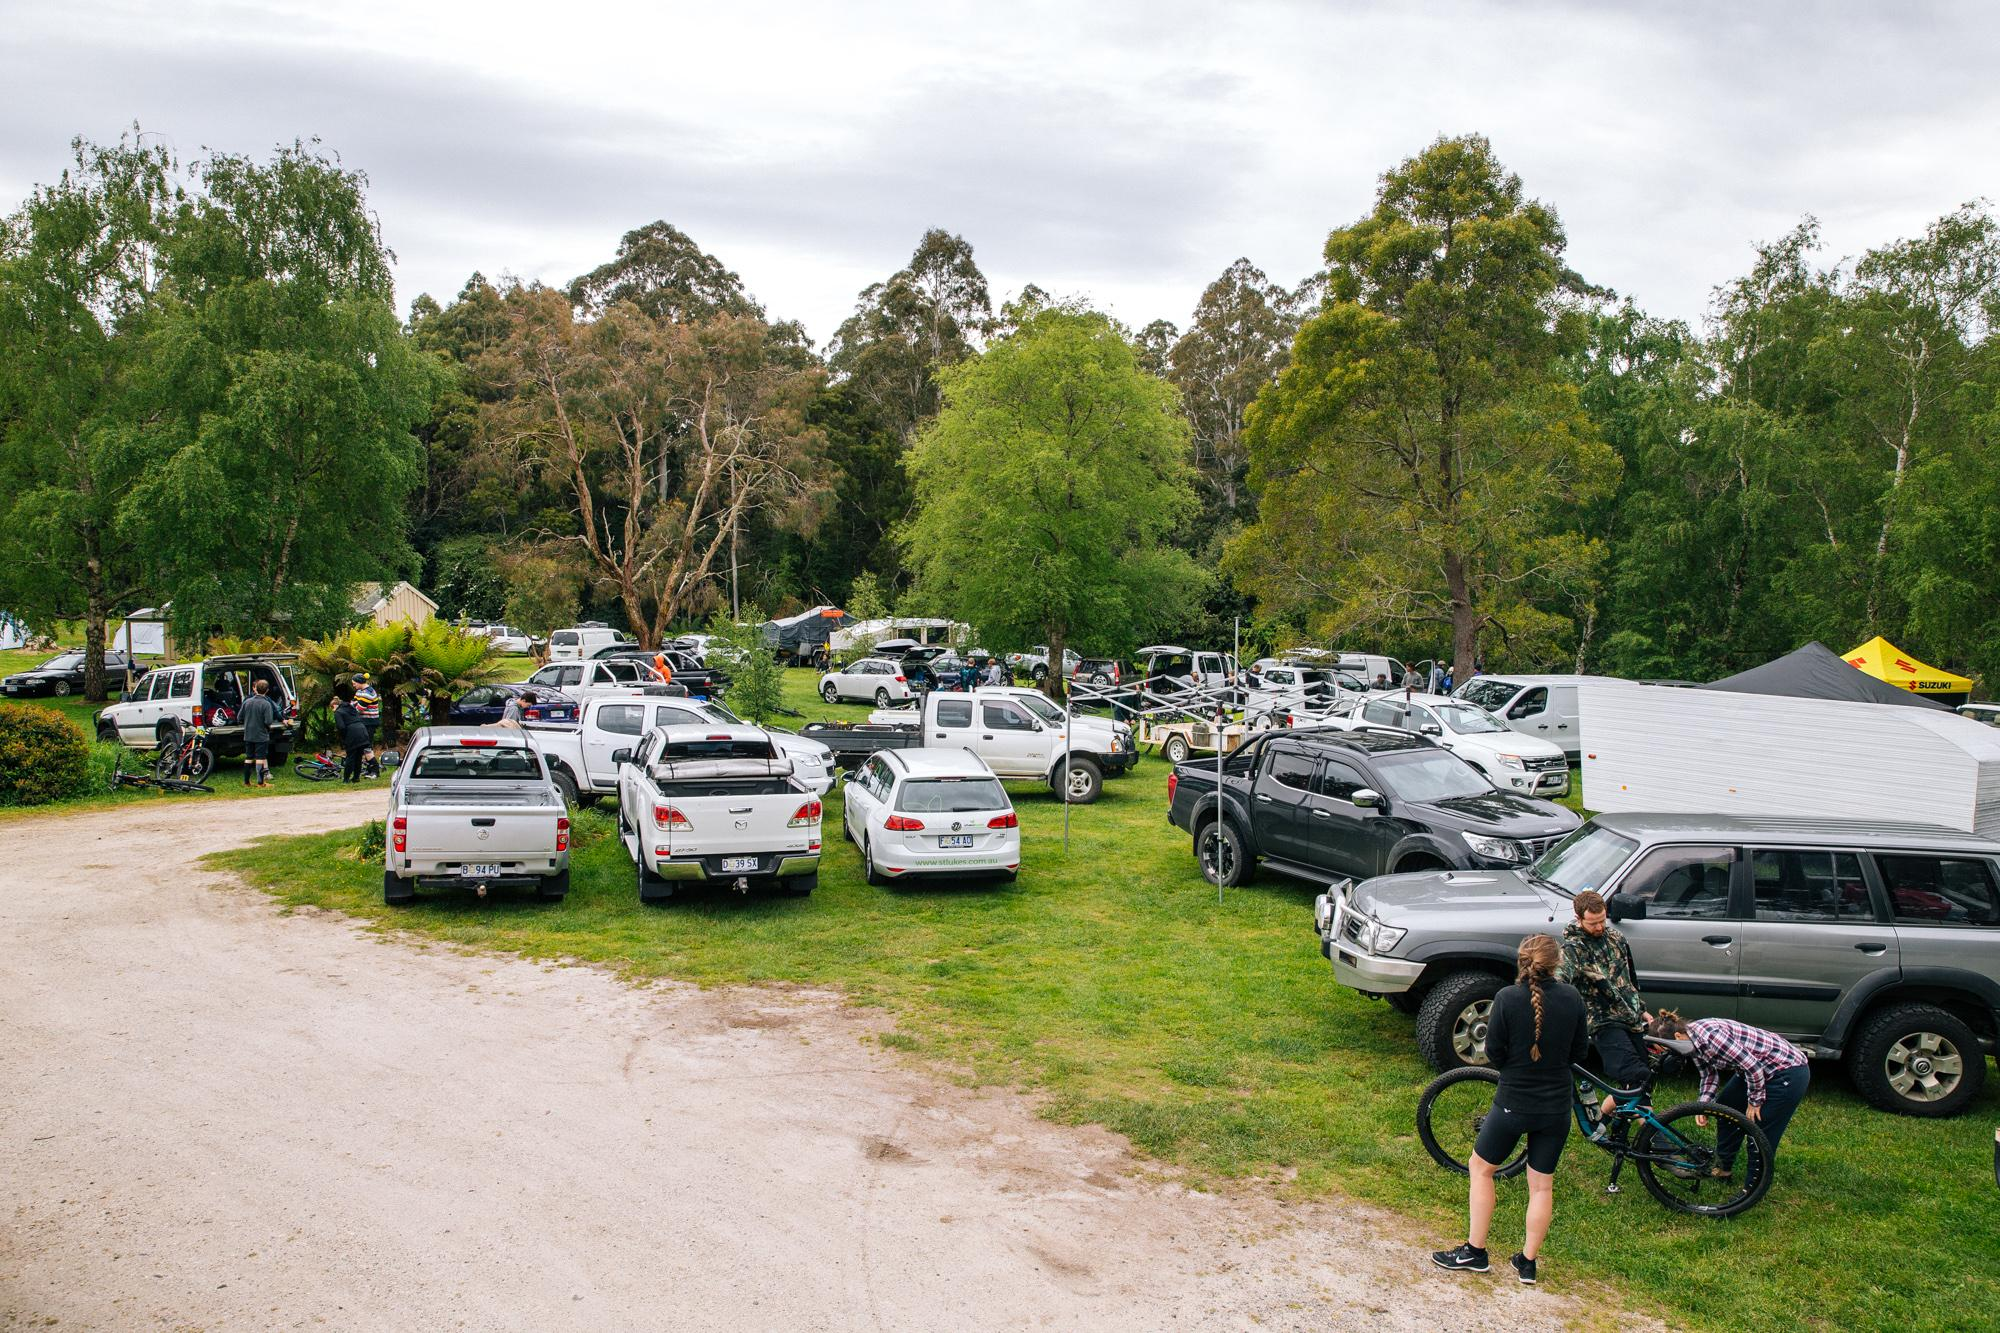 The campsite was full with enduro racers and their families. It was a weekend affair!